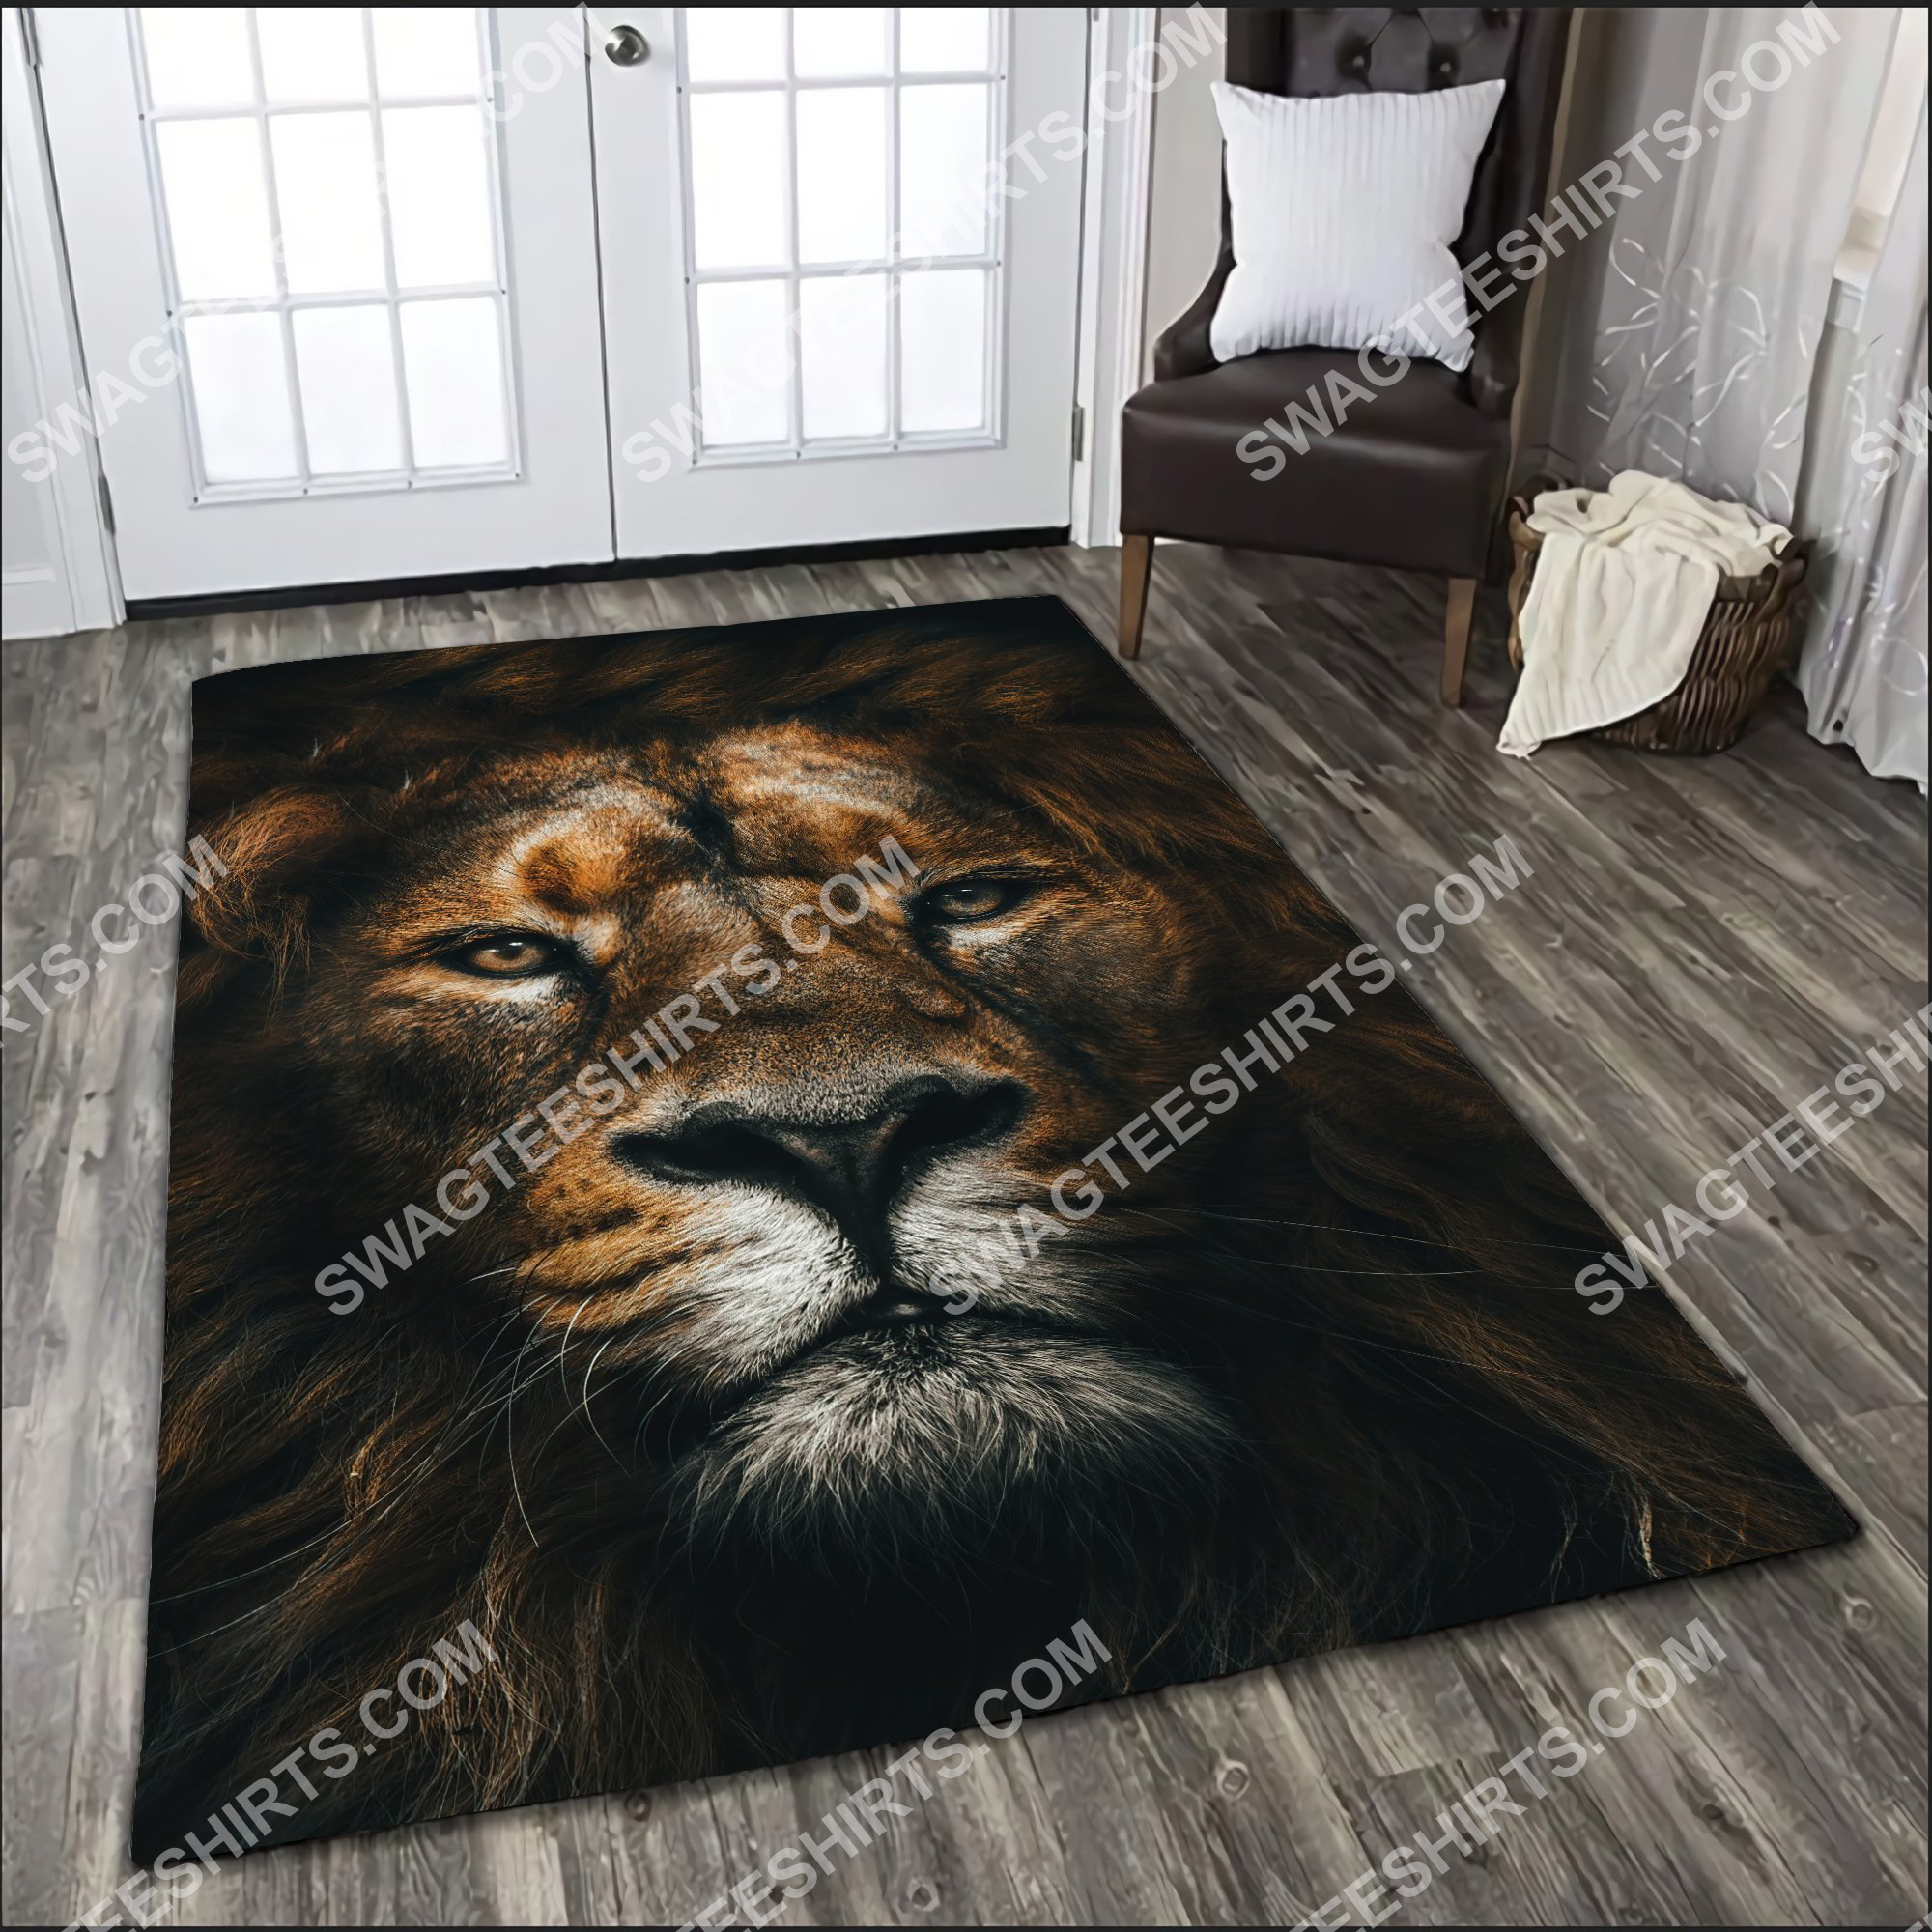 the lion retro all over printed rug 2(1)